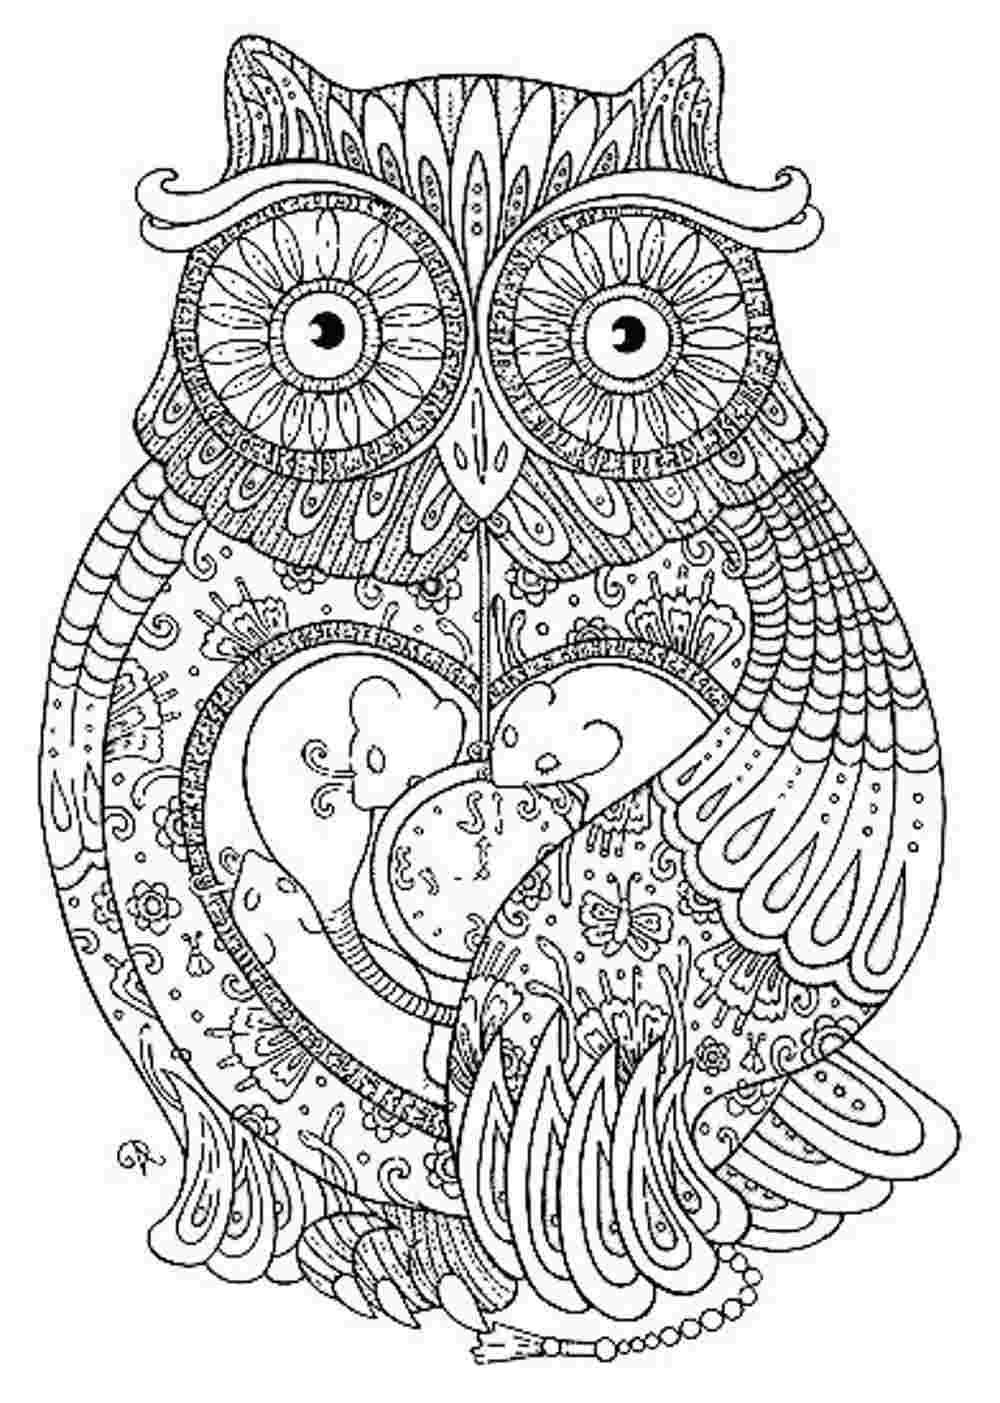 owl coloring pages for adults - Printable Kids Colouring Pages | Owl ...